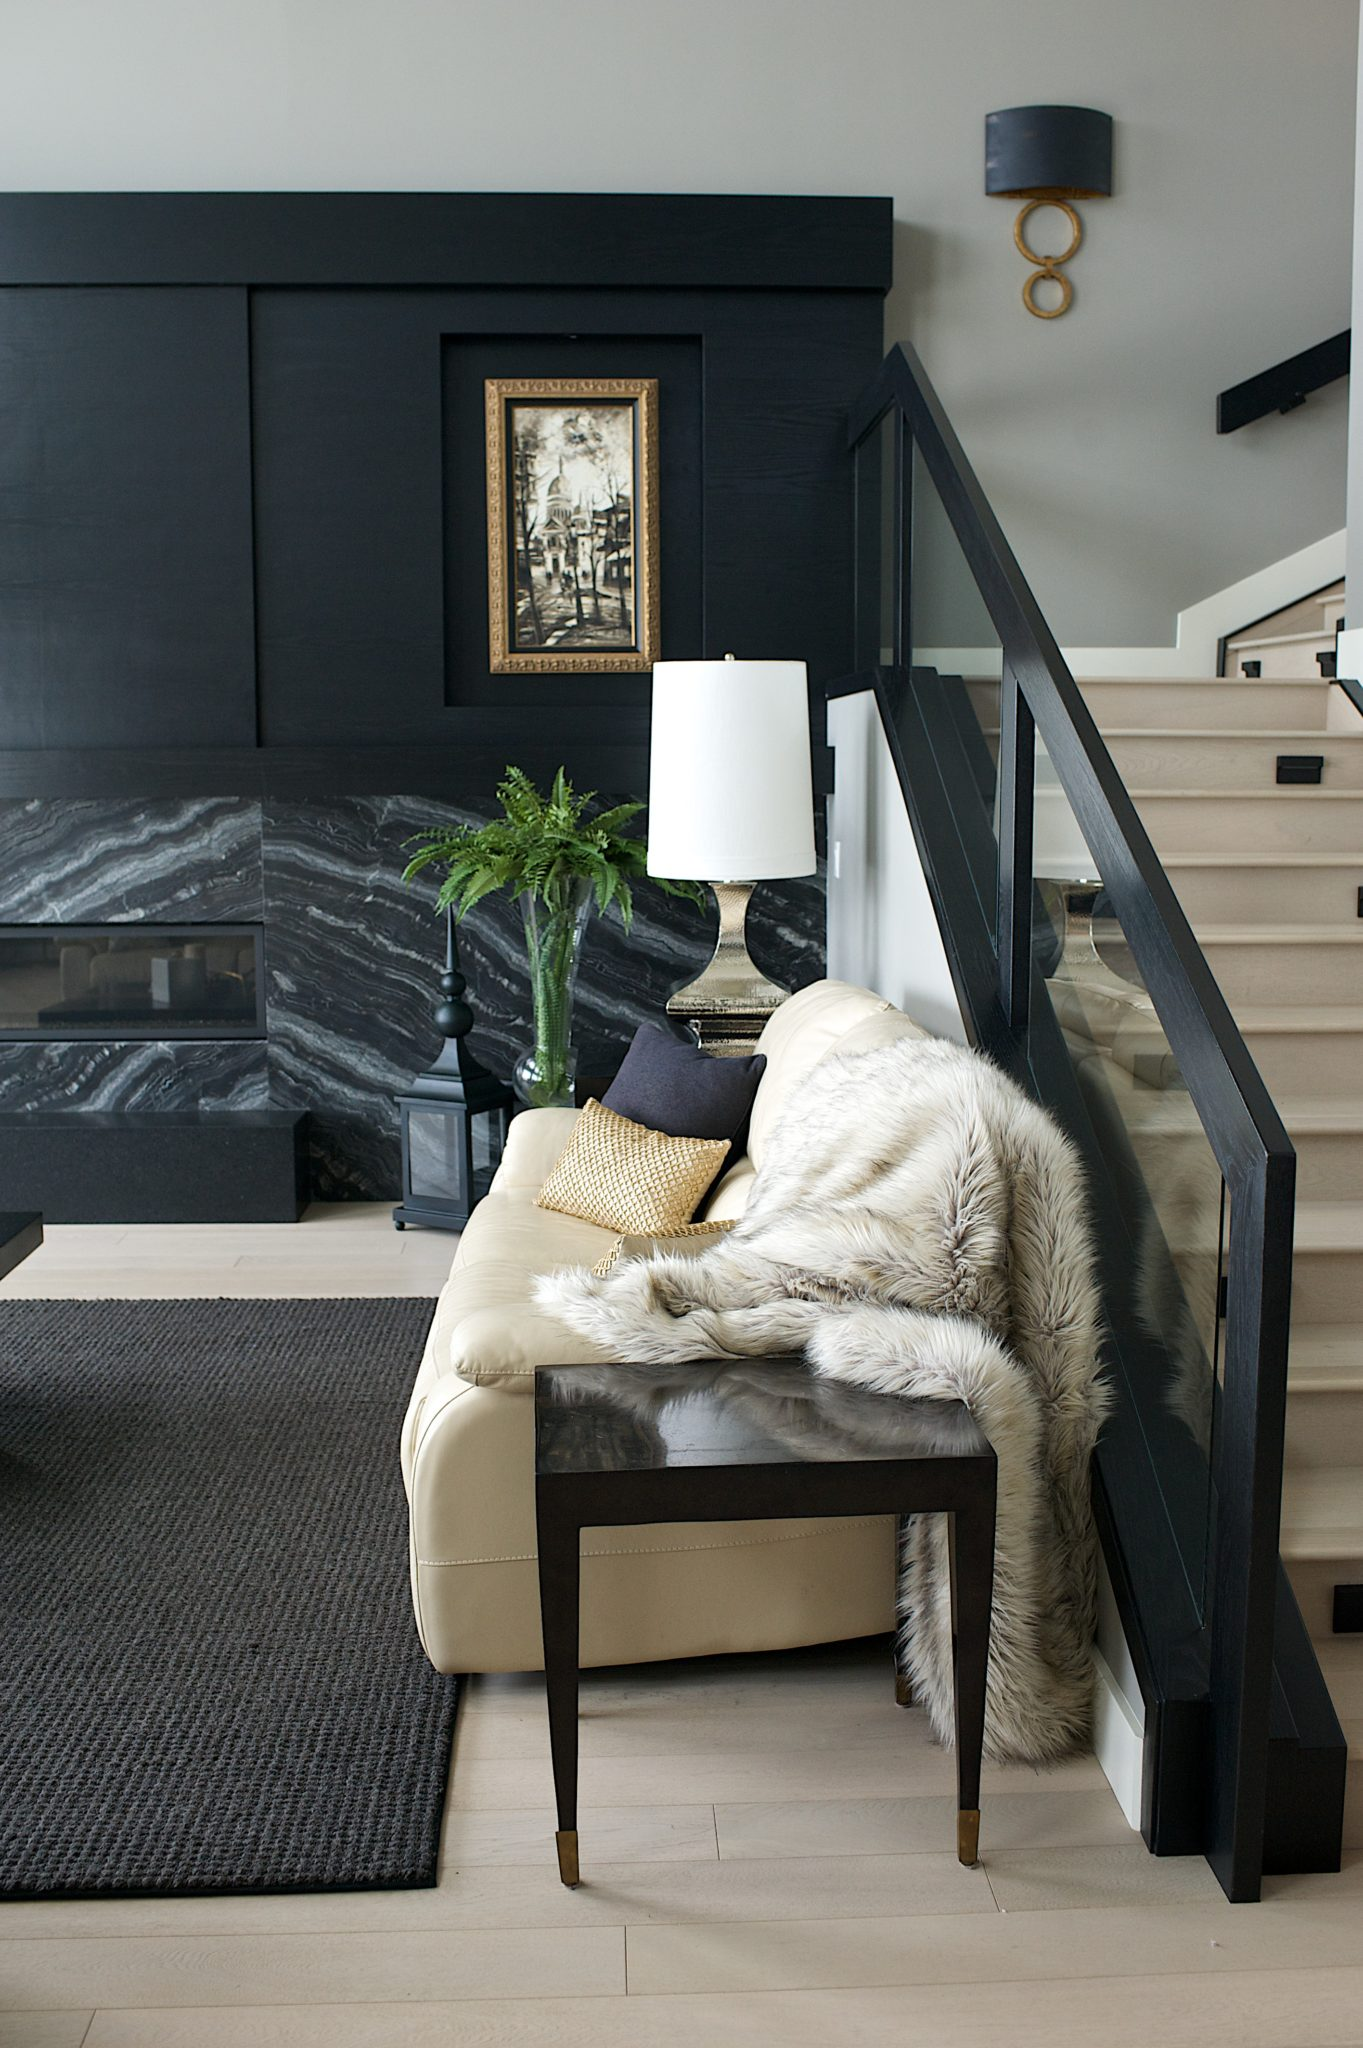 Modern Steam Punk fireplace and stairwell, black and wire brushed oak details by Marie Hebson's interiorsBYDESIGNinc.